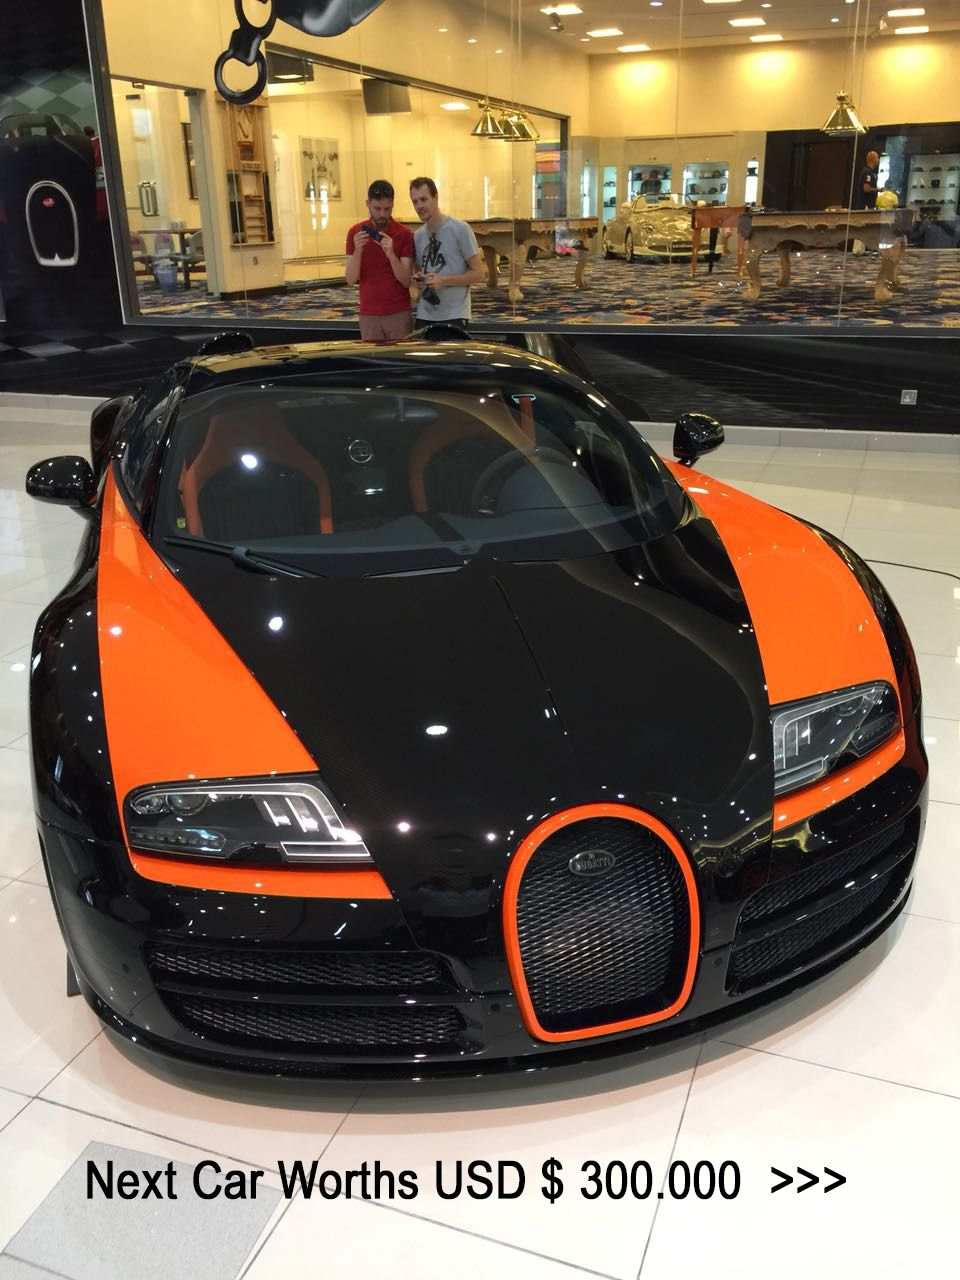 The collection of luxury cars of the Sheikh of Dubai